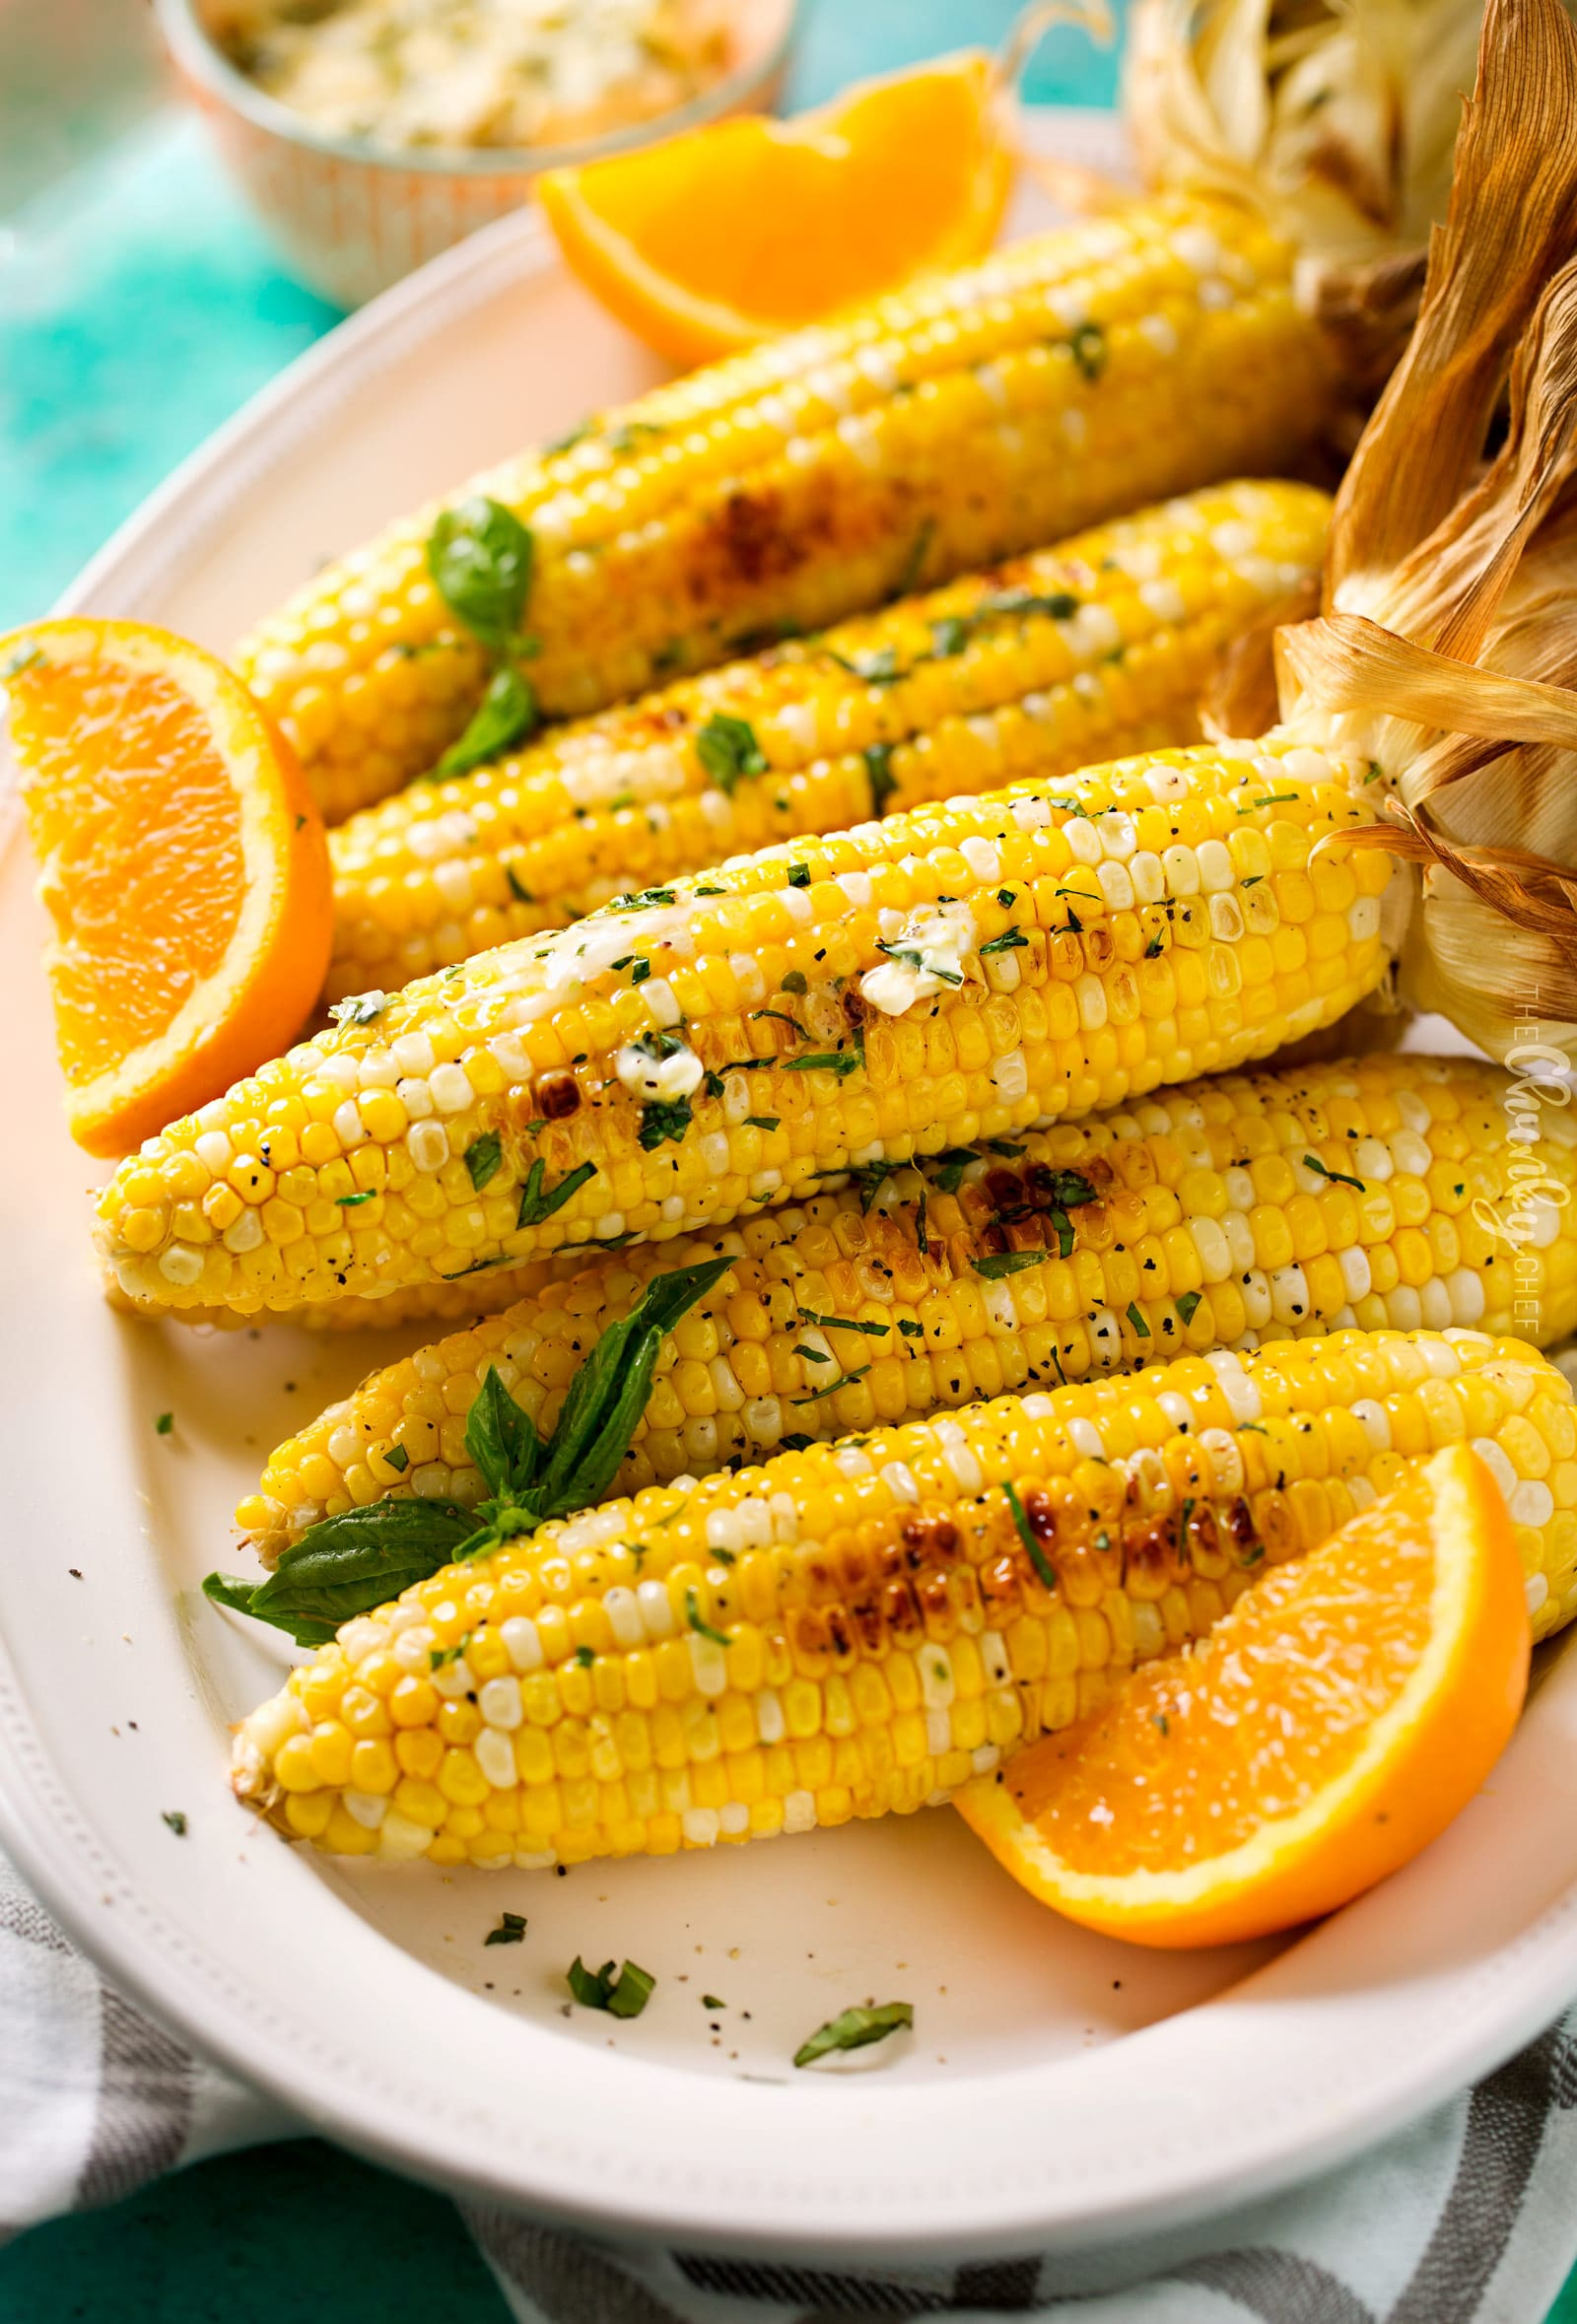 Oven Roasted Corn on the Cob | This foolproof method for cooking corn on the cob is easy, perfect for any kind of weather, and produces the juiciest, perfectly cooked ears of corn ever! | http://thechunkychef.com